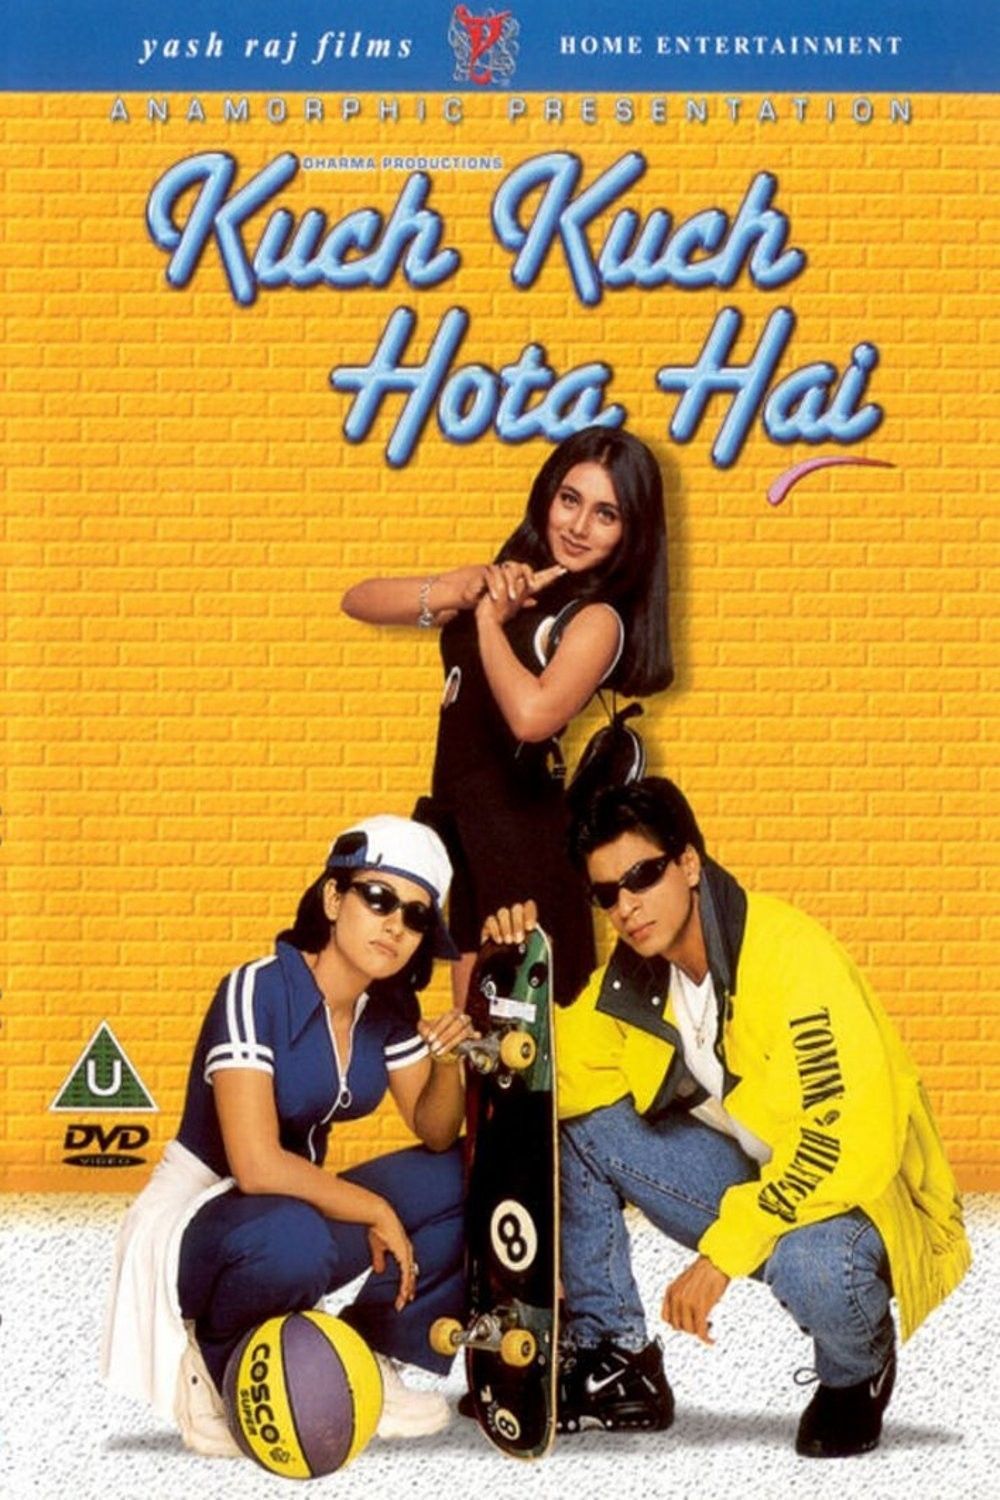 bollywood love story movies kuch-kuch-hota-hai